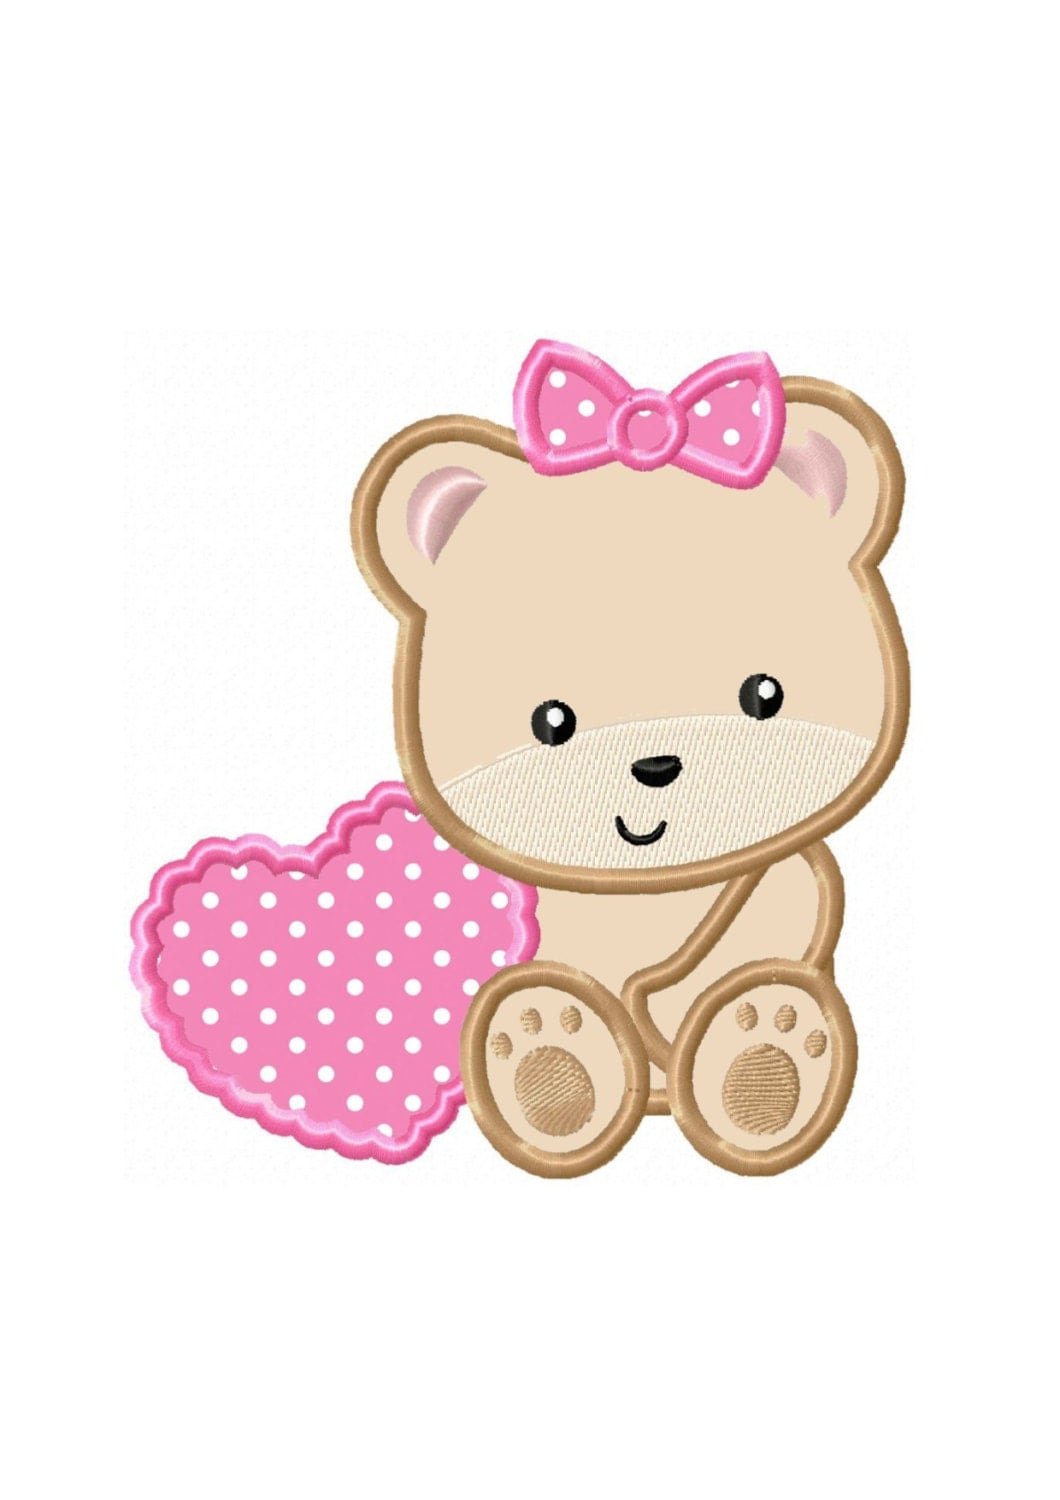 Applique machine embroidery design no baby girl bear